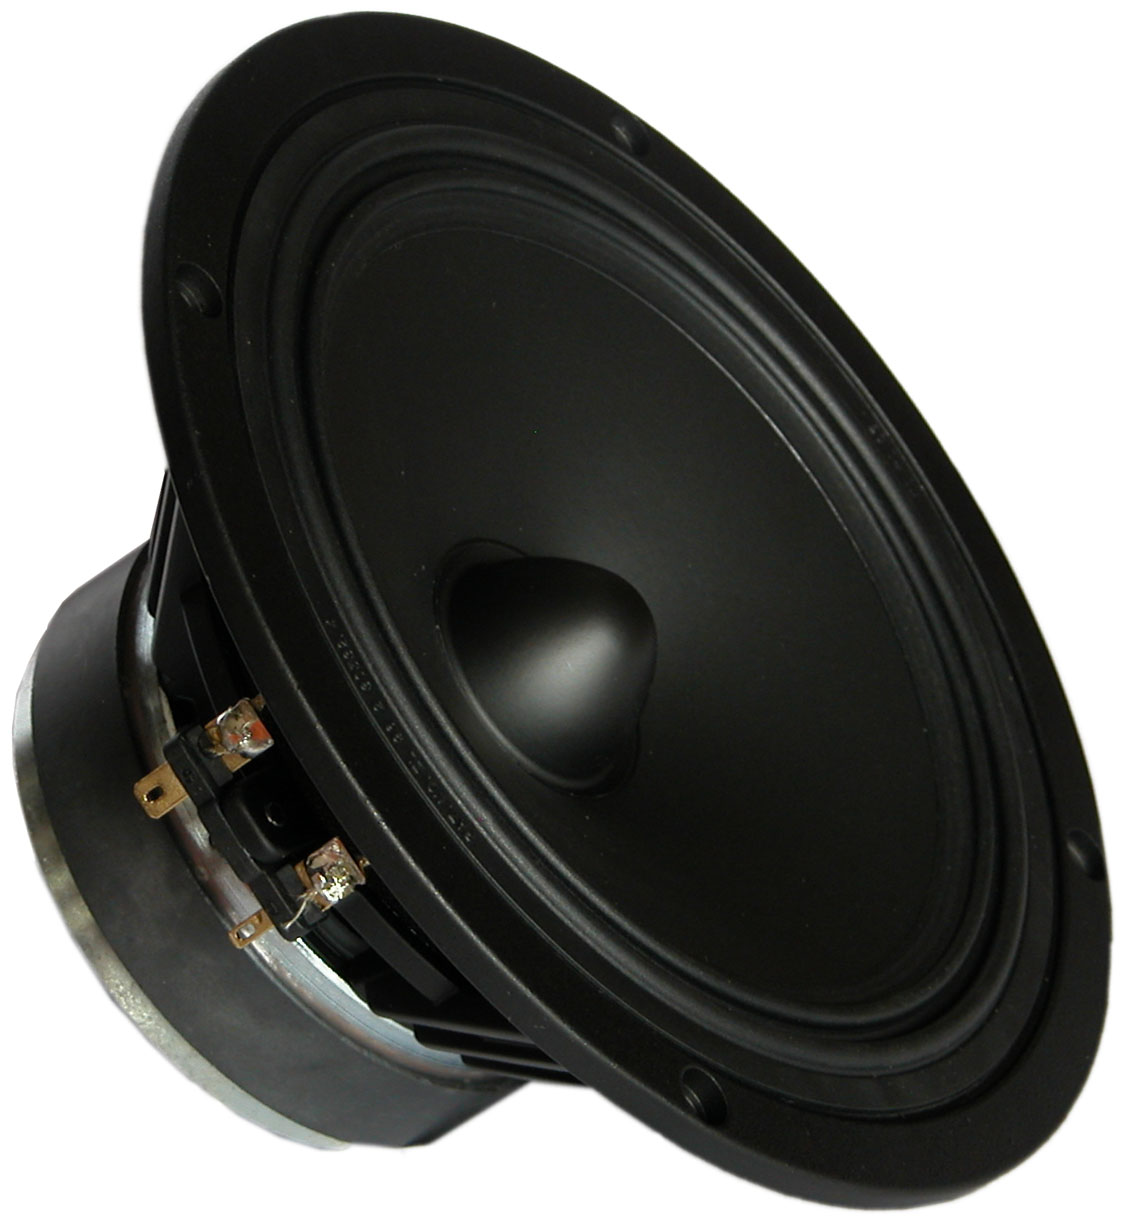 tb-speakers-w6-623c-mid-woofer-6-5-8-ohm-60wmax